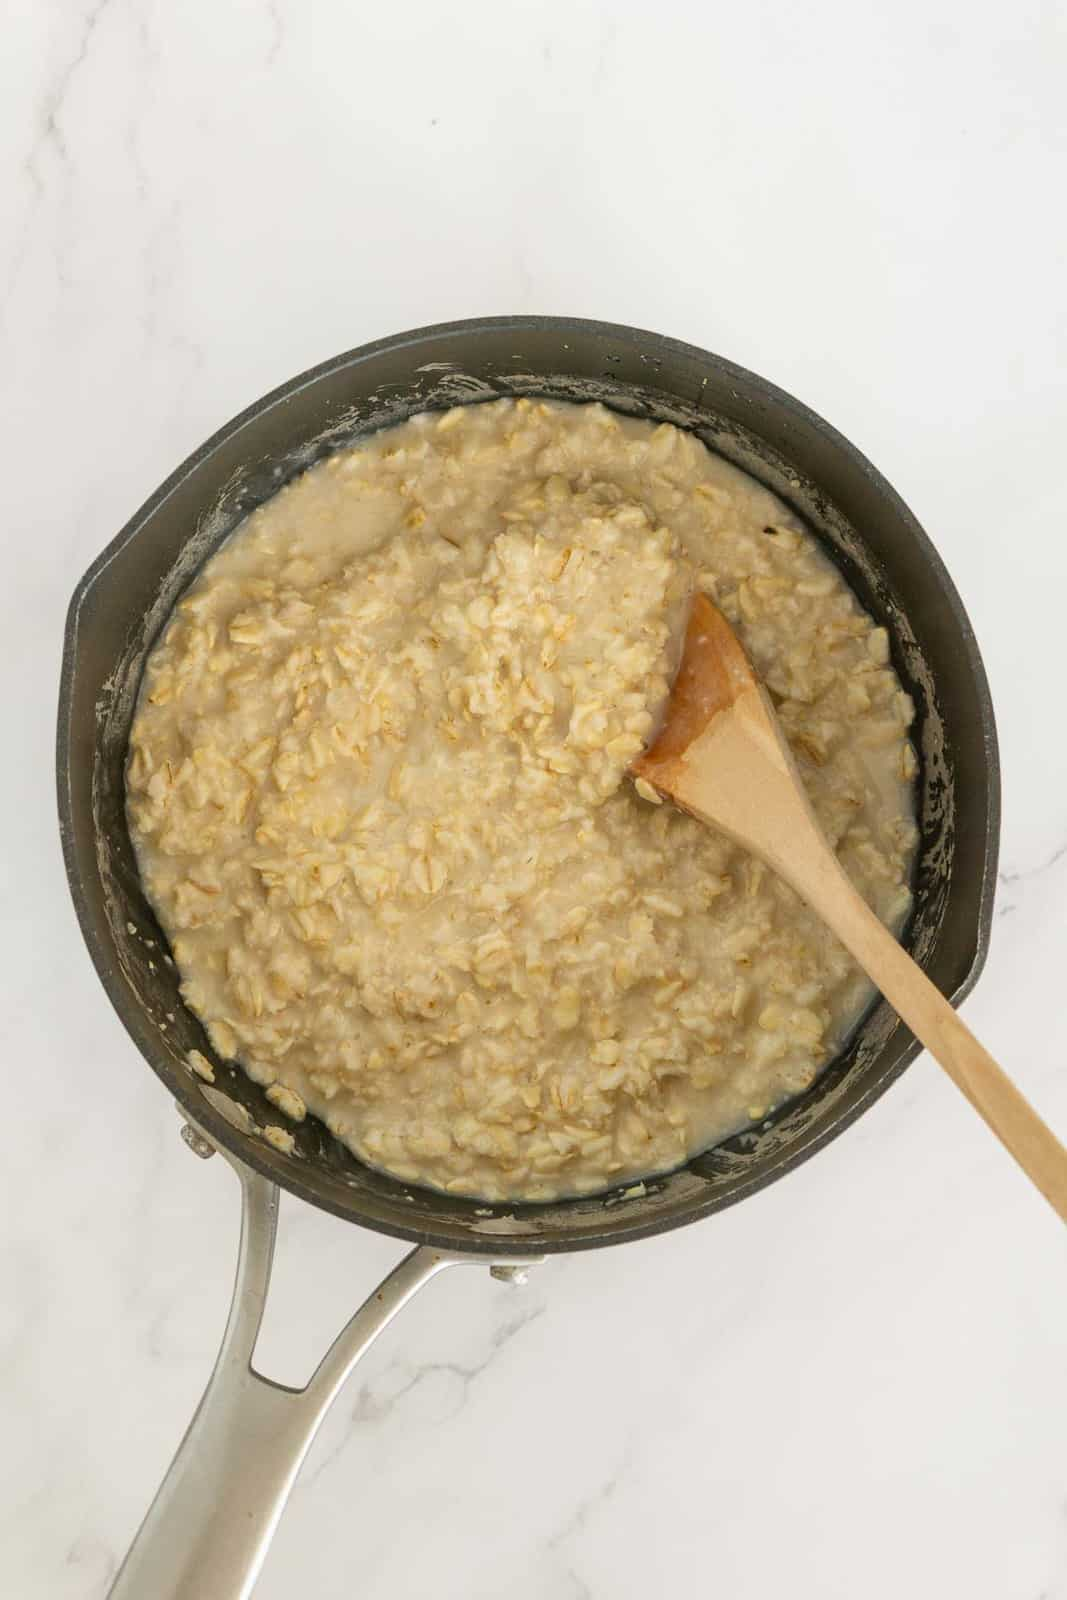 Cooking savory oatmeal in a saucepan.